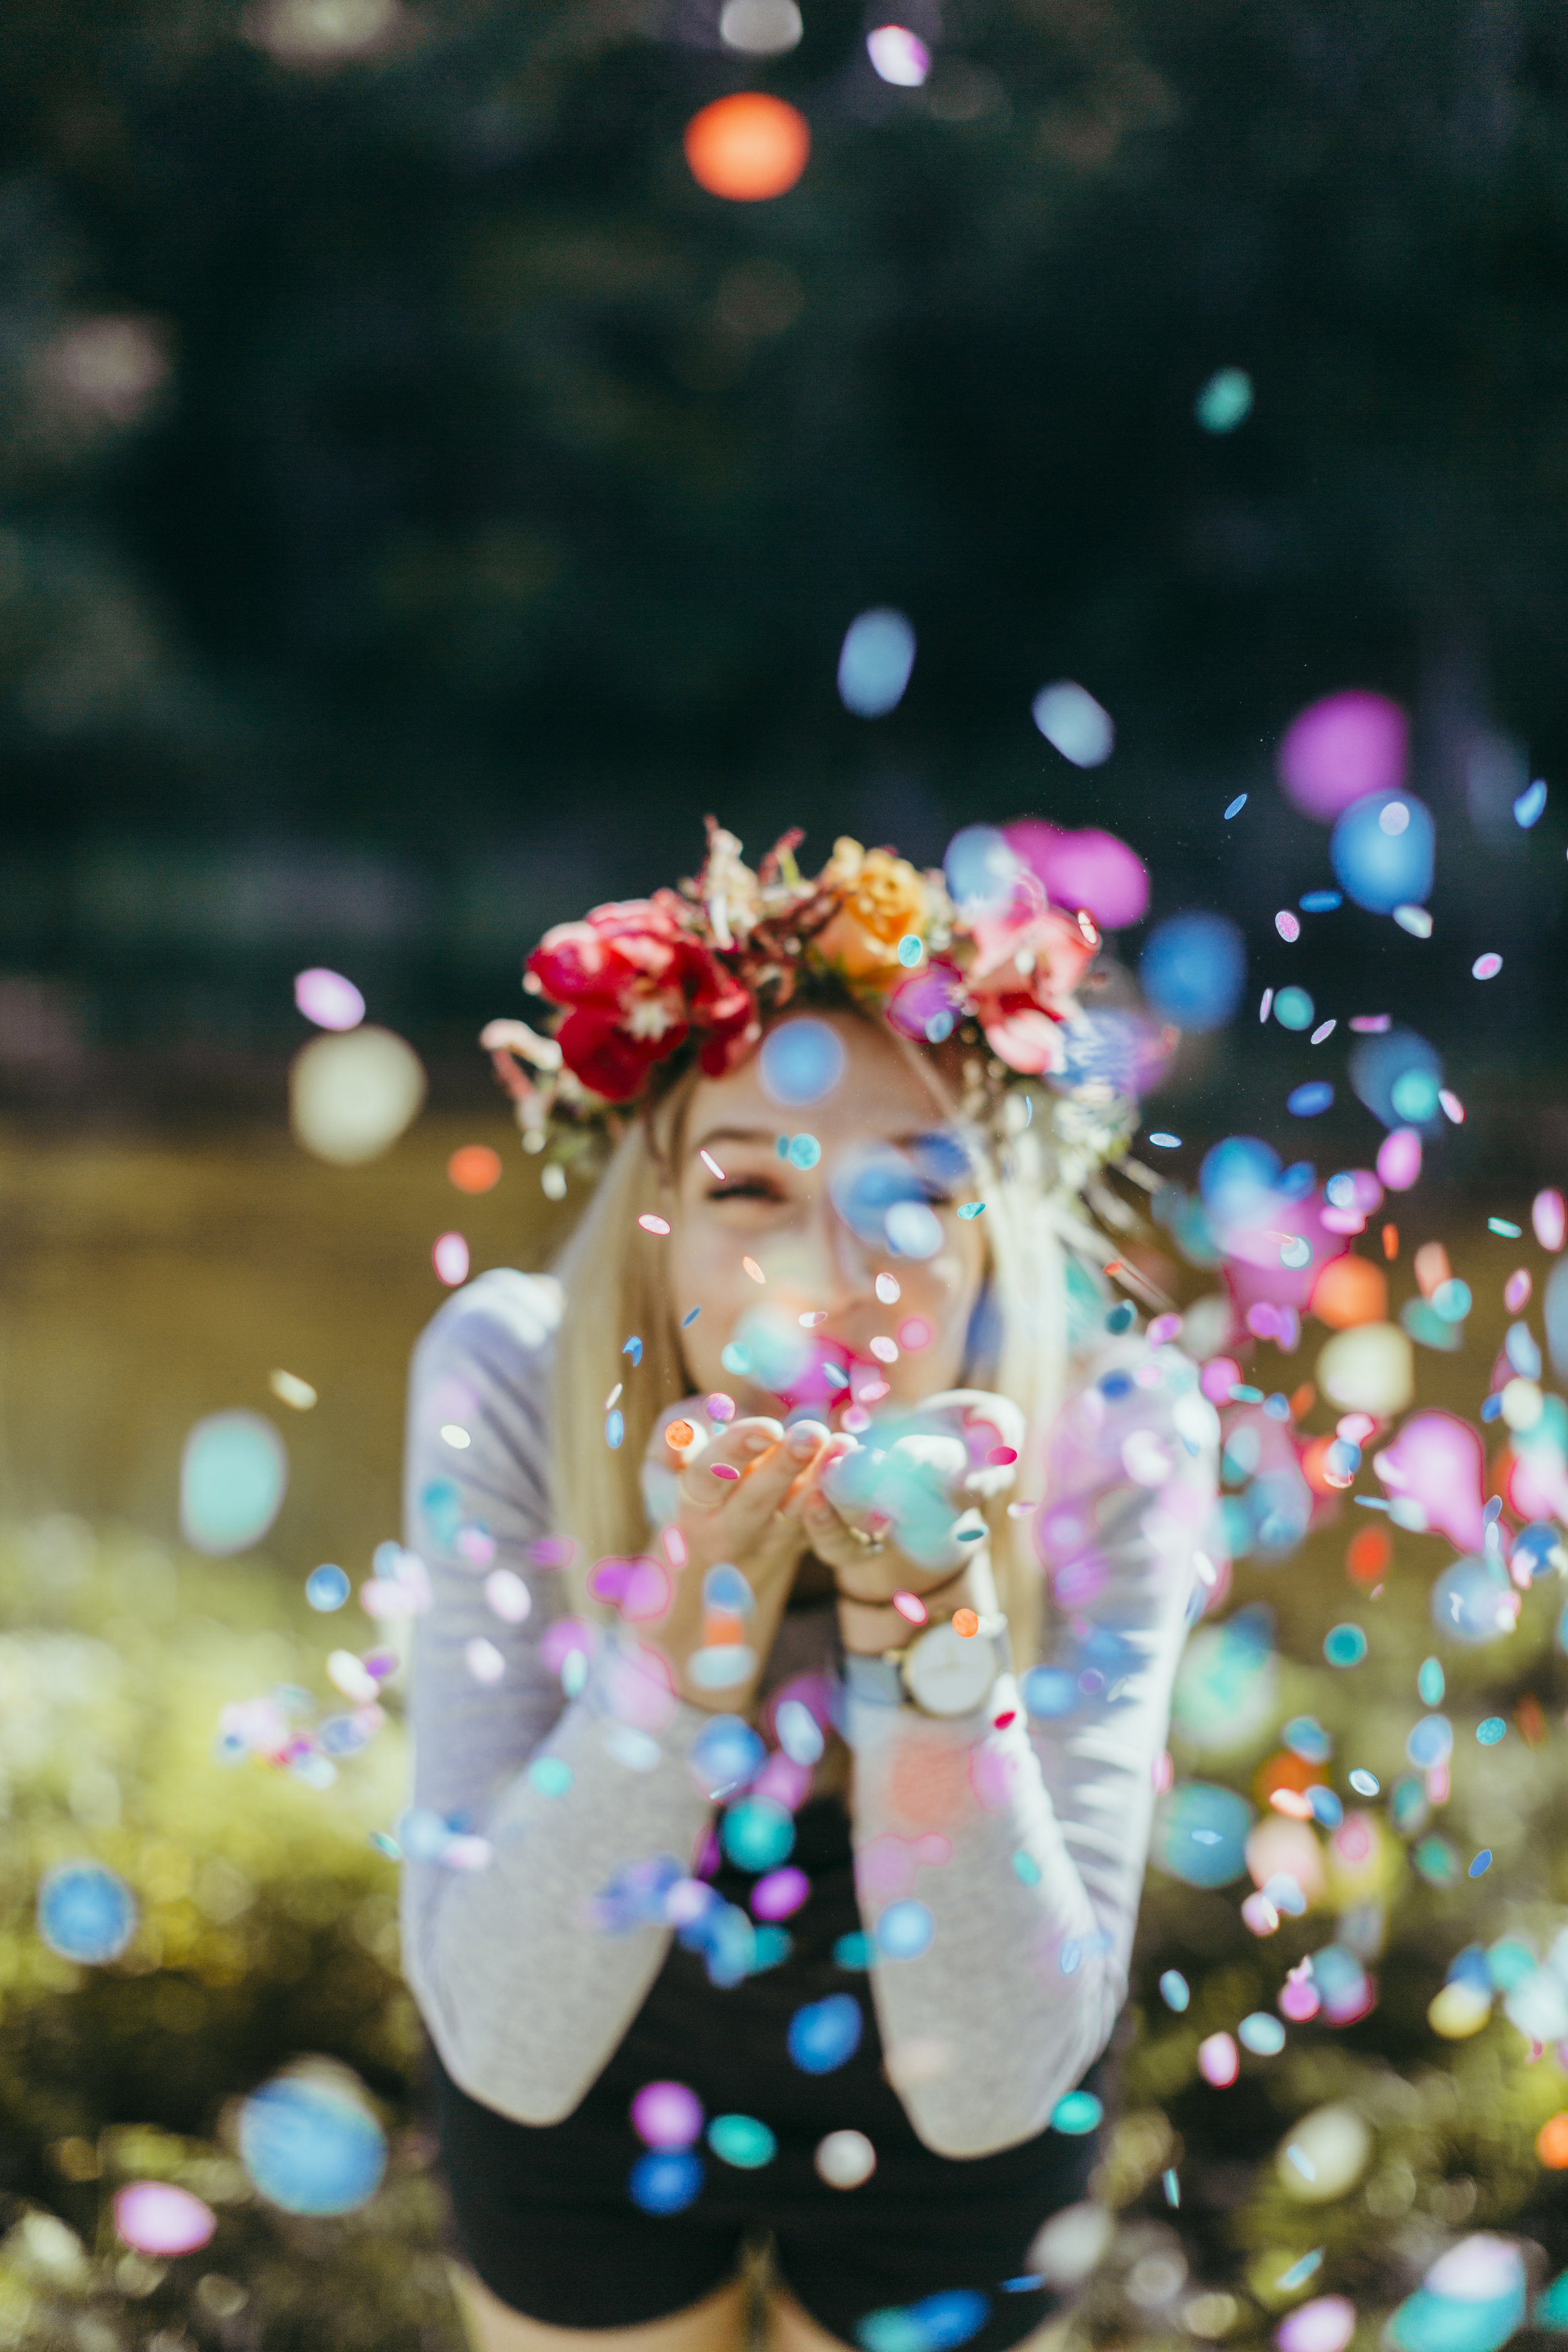 Woman wearing flower crown blowing brightly coloured confetti from her hands